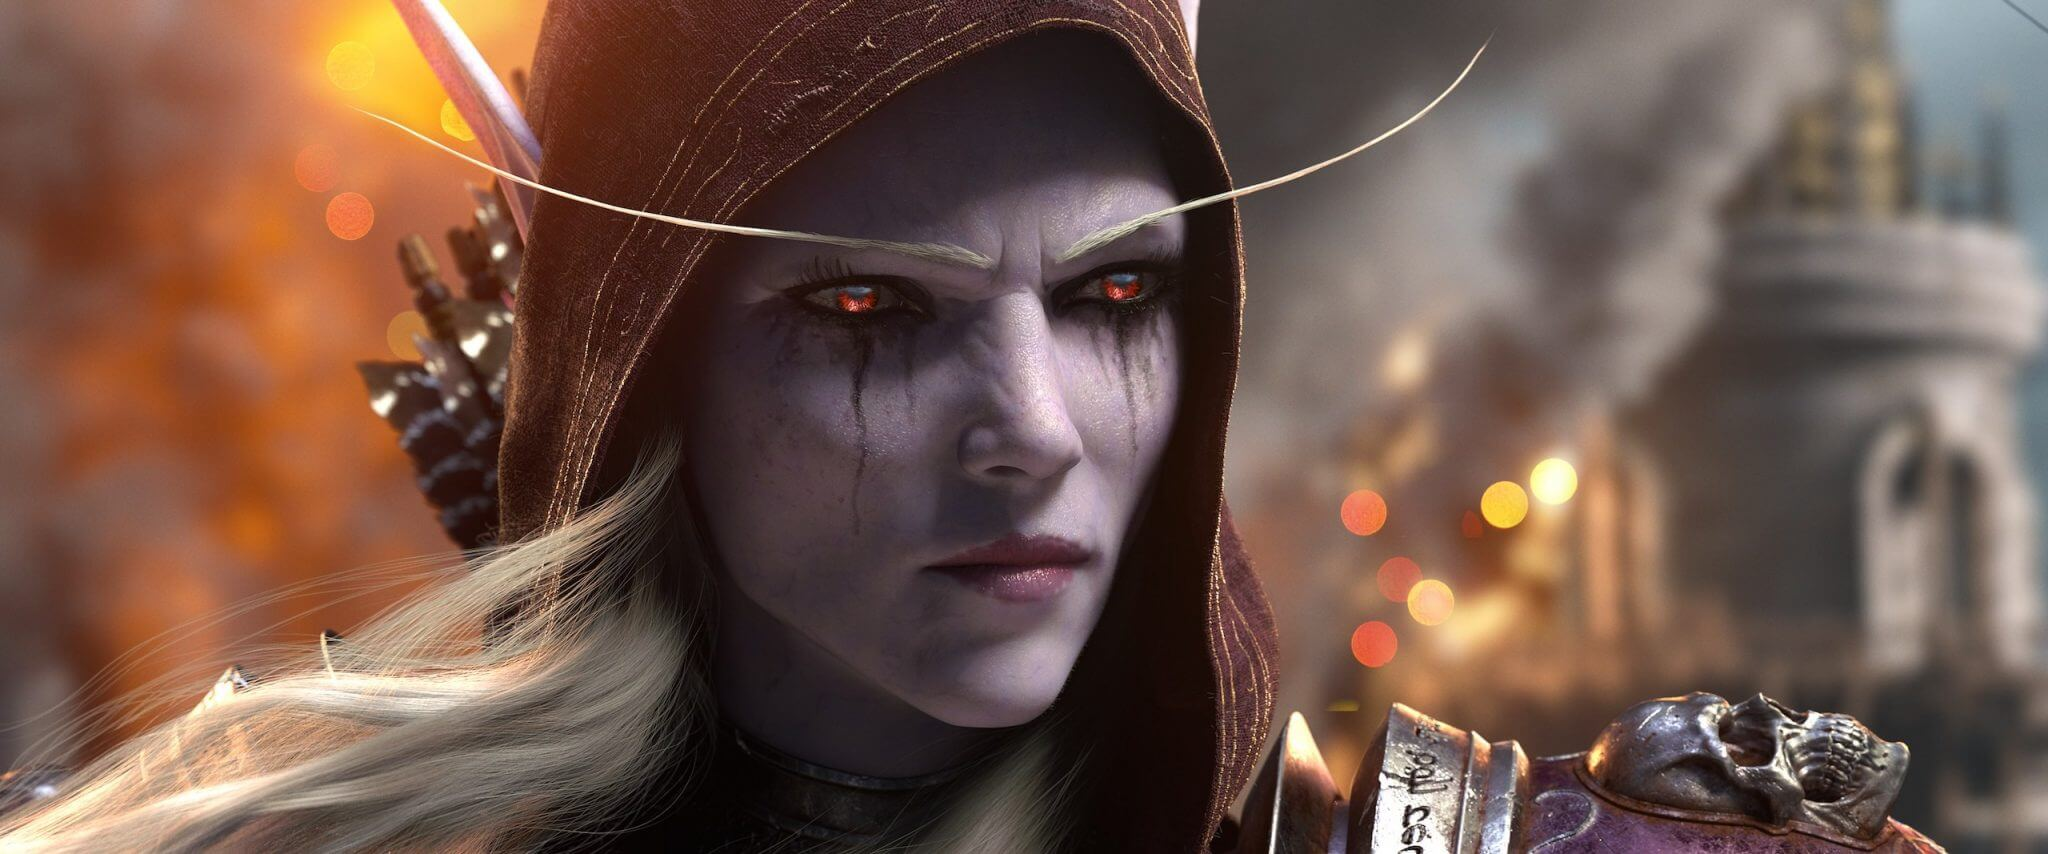 Sylvanas führt die Horde in World of Warcraft: Battle for Azeroth (Bildrechte: Blizzard Entertainment)